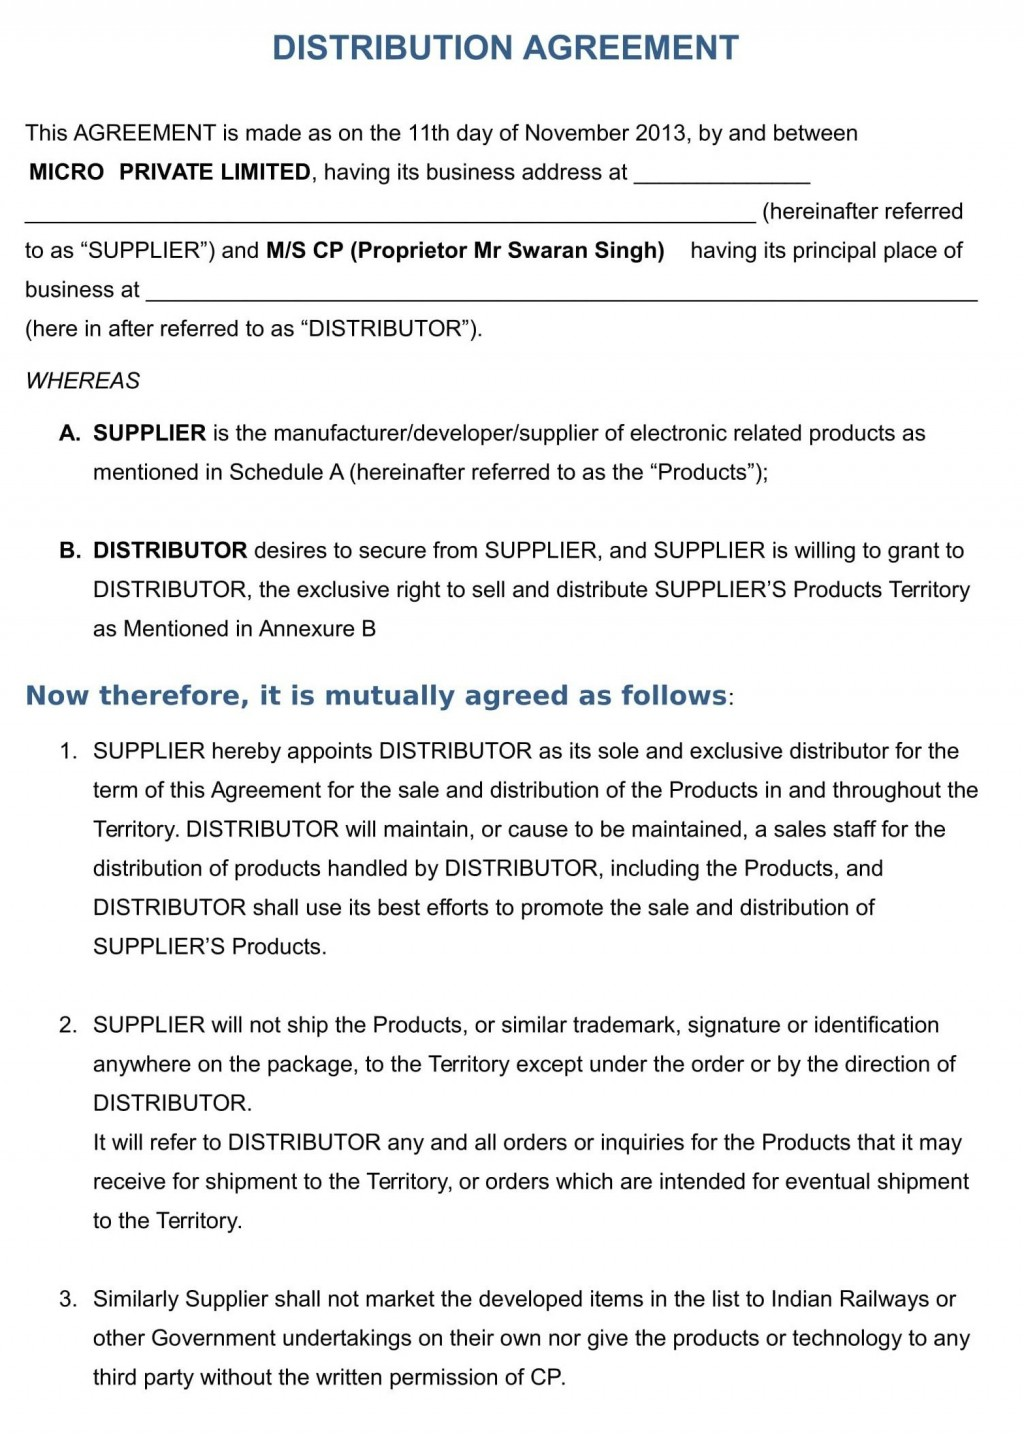 001 Shocking Exclusive Distribution Agreement Template Free Download Highest Quality Large